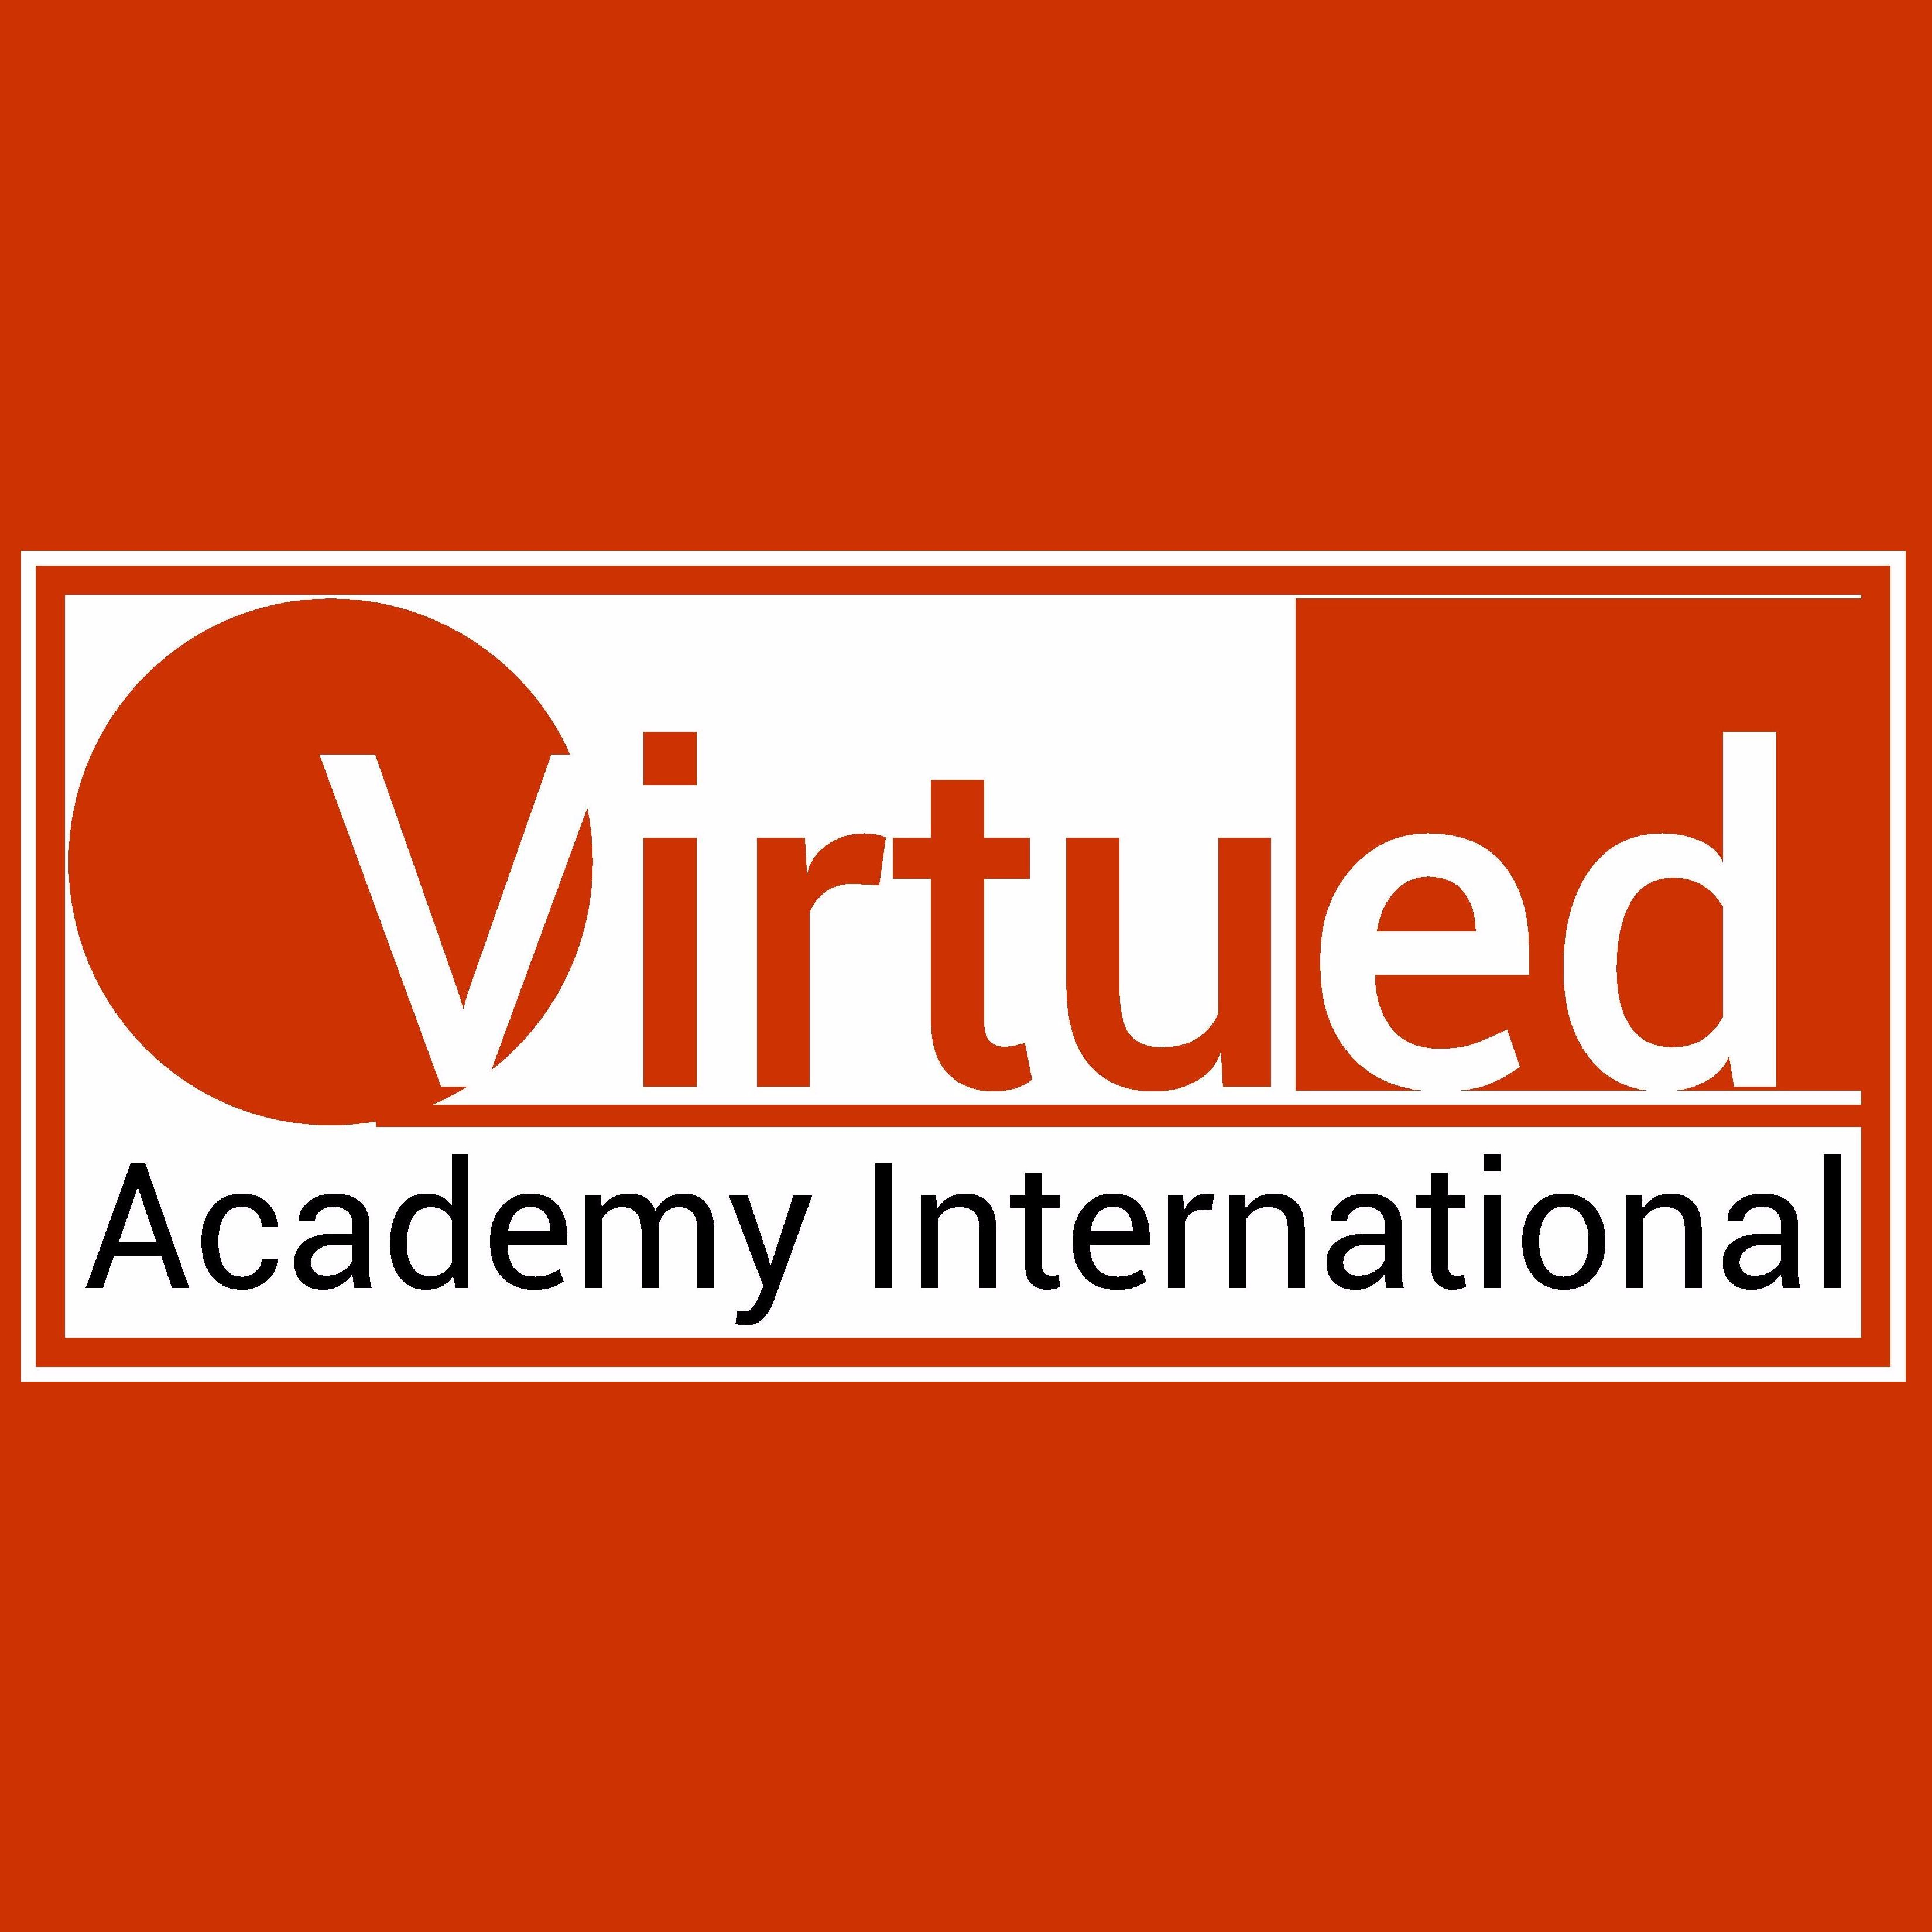 Virtued Academy International